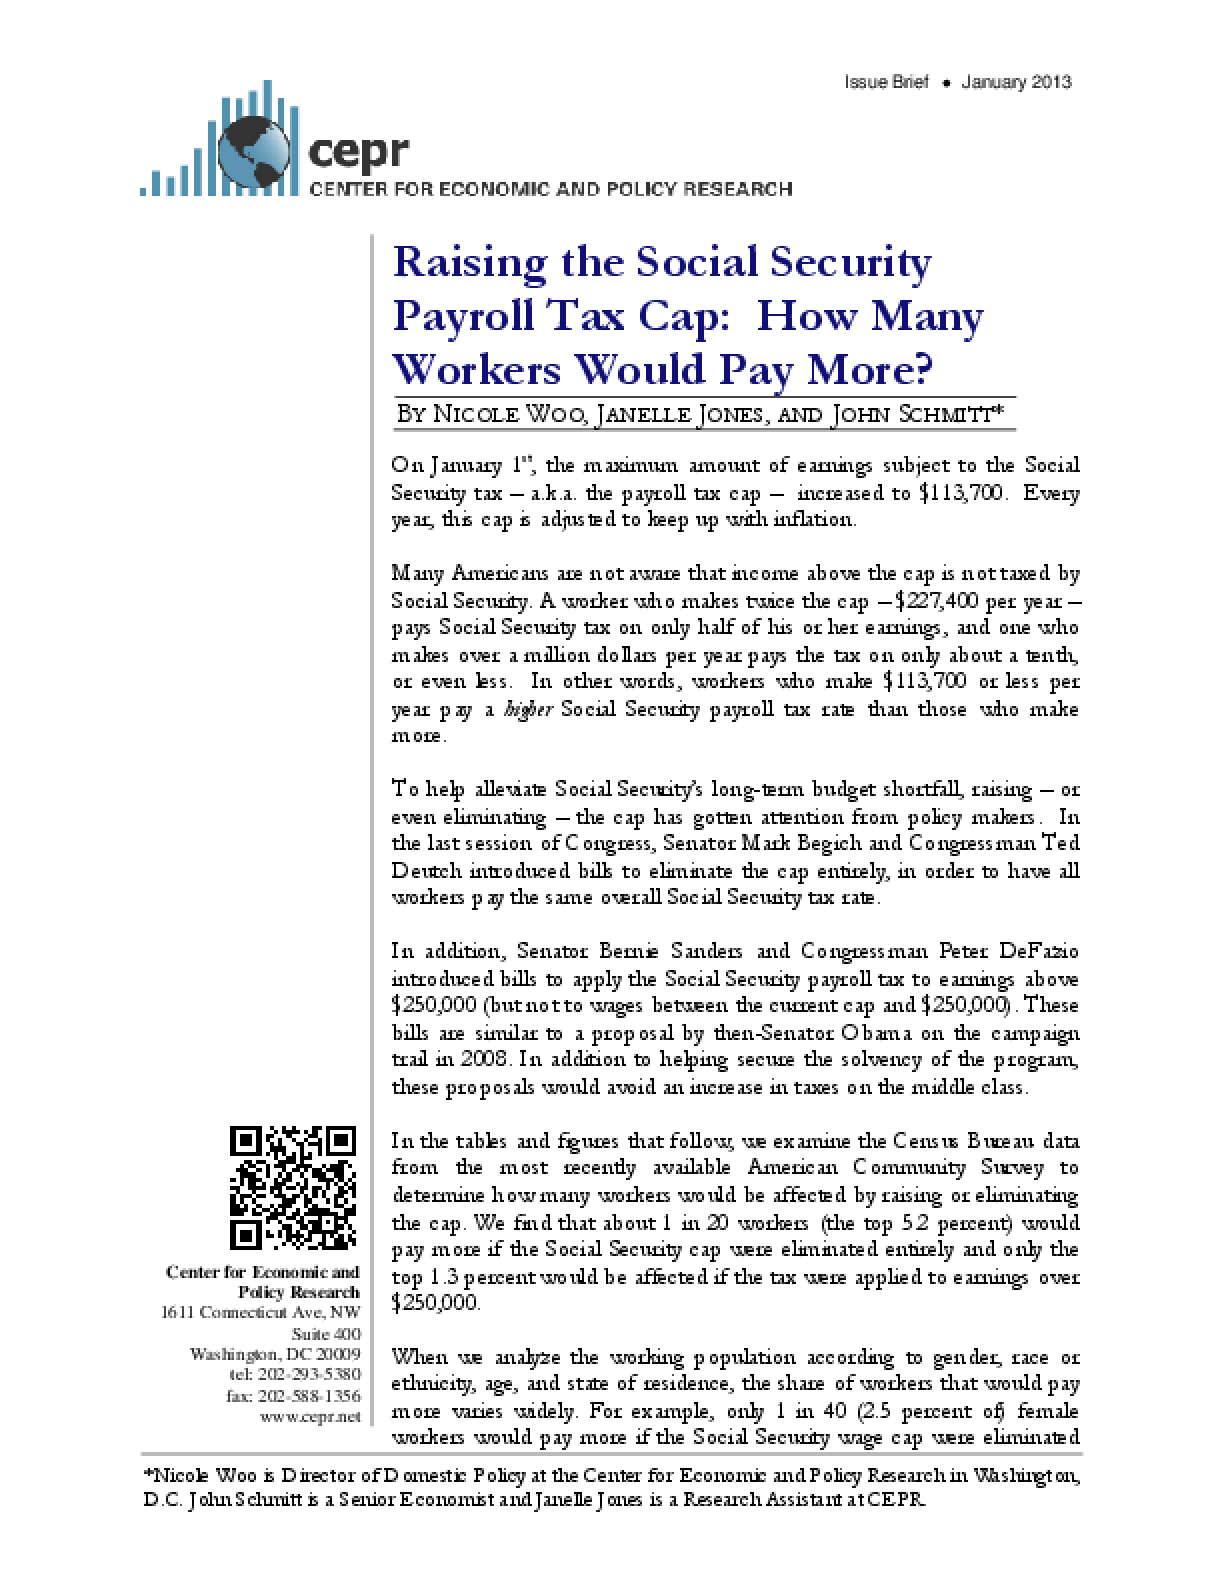 Raising the Social Security Payroll Tax Cap: How Many Workers Would Pay More?